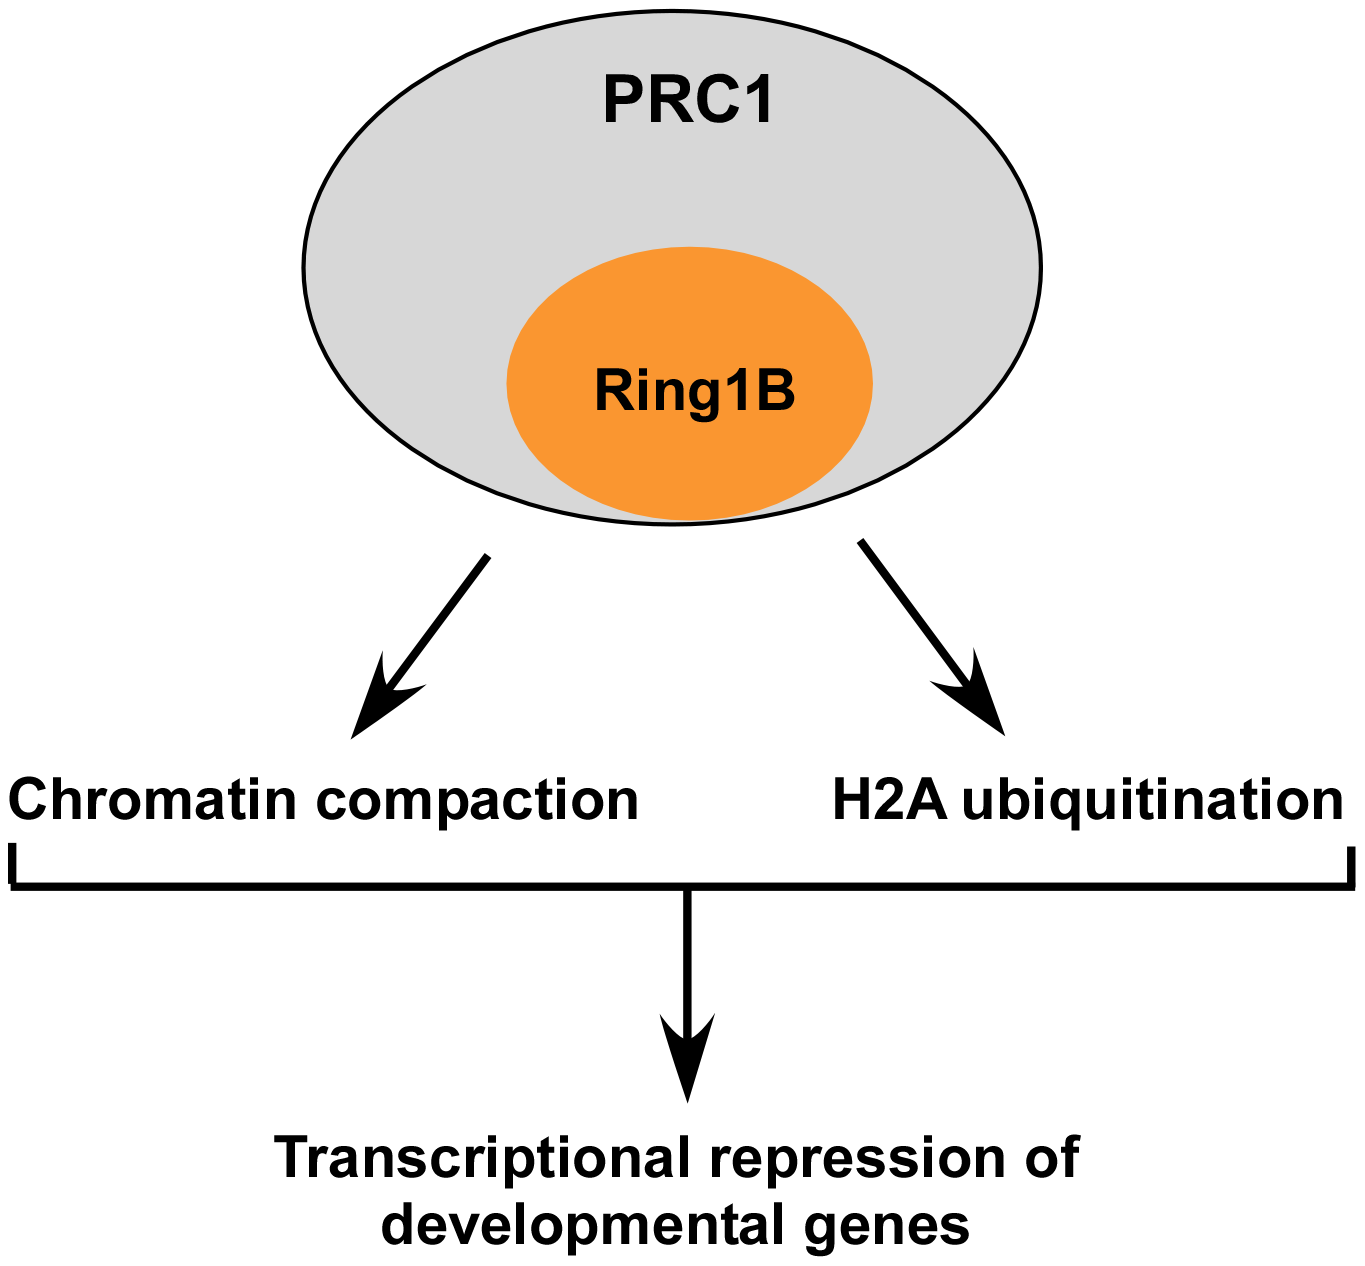 A schematic summary of this study demonstrating that PRC1-dependent repression of developmental genes in ES cells is mediated by multiple effector mechanisms.